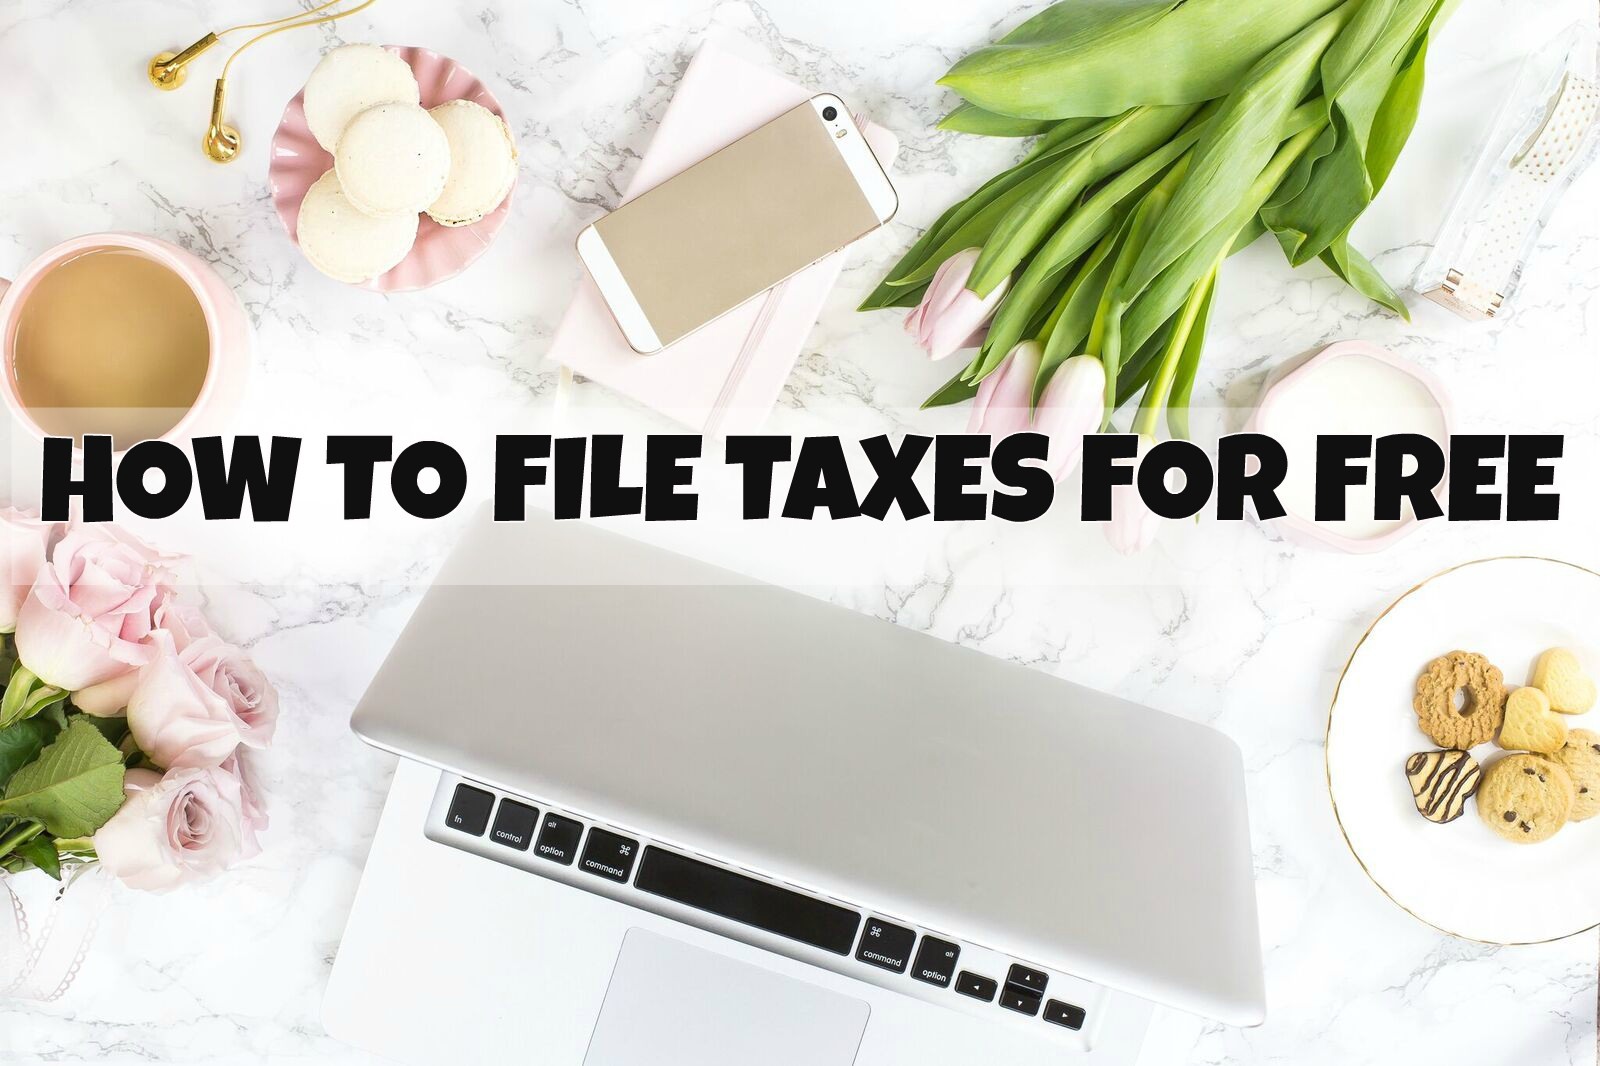 howtofiletaxesforfree